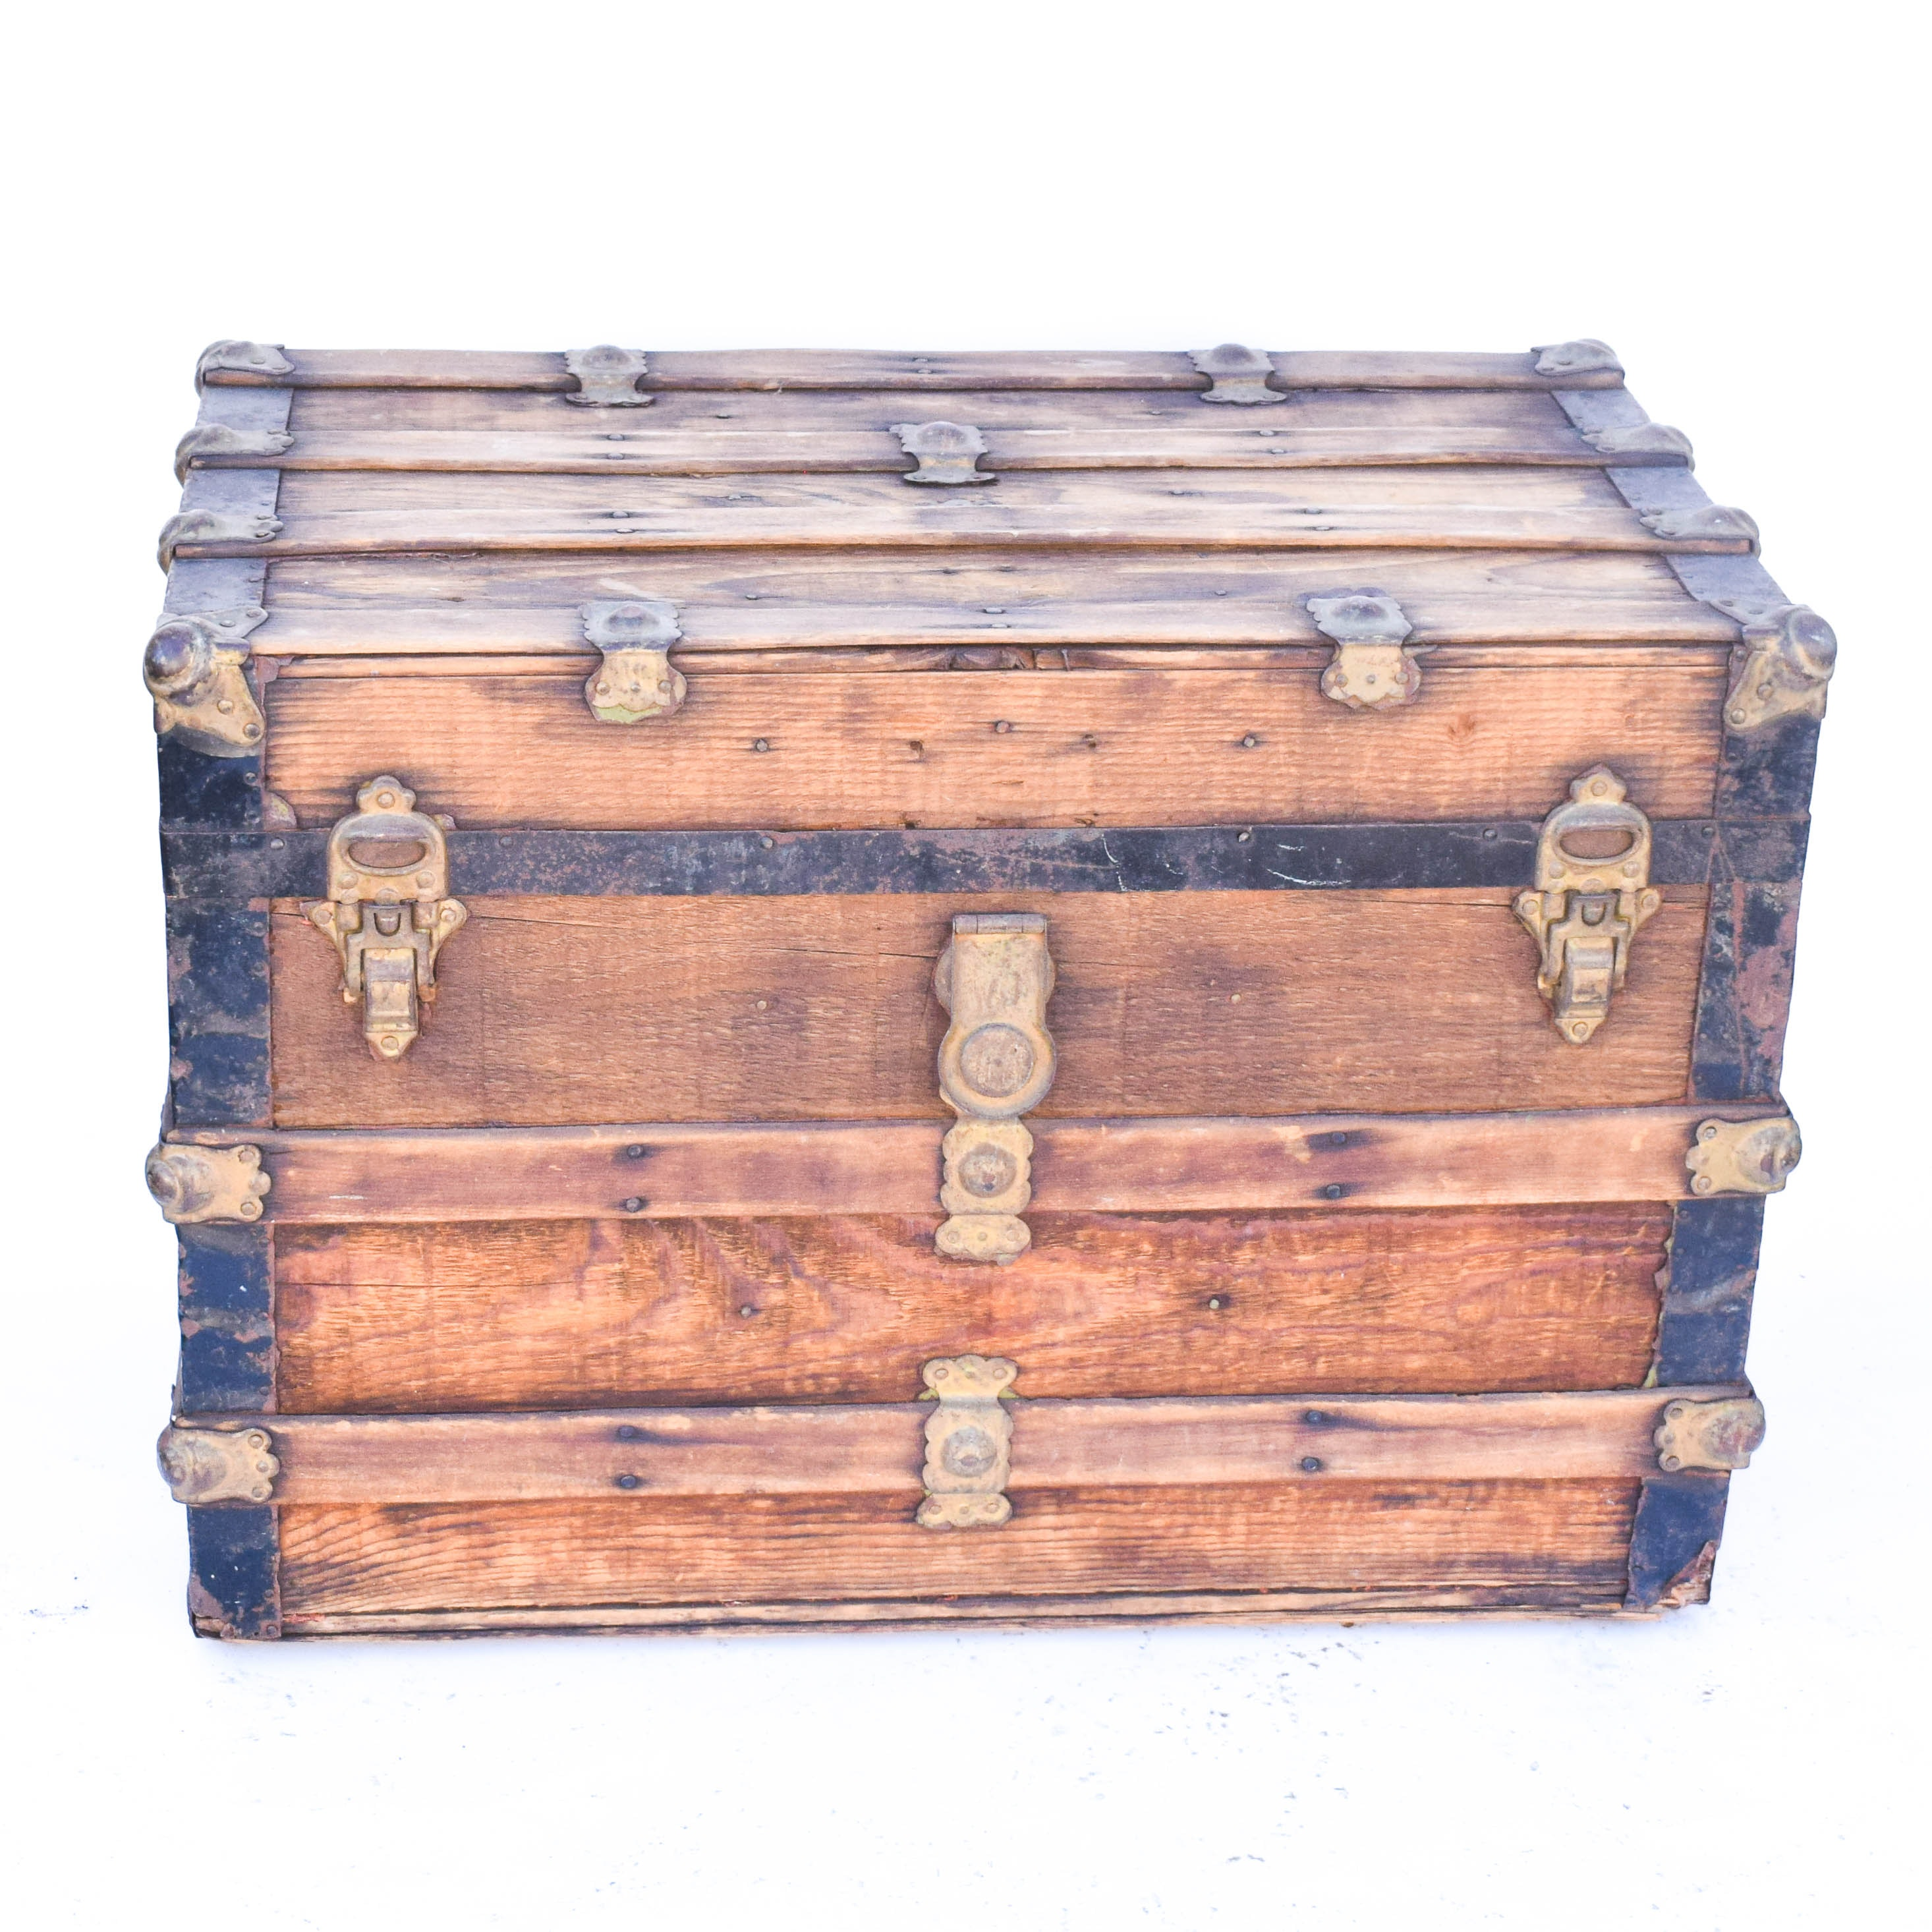 Antique Wooden Steamer Trunk With Leather Accents